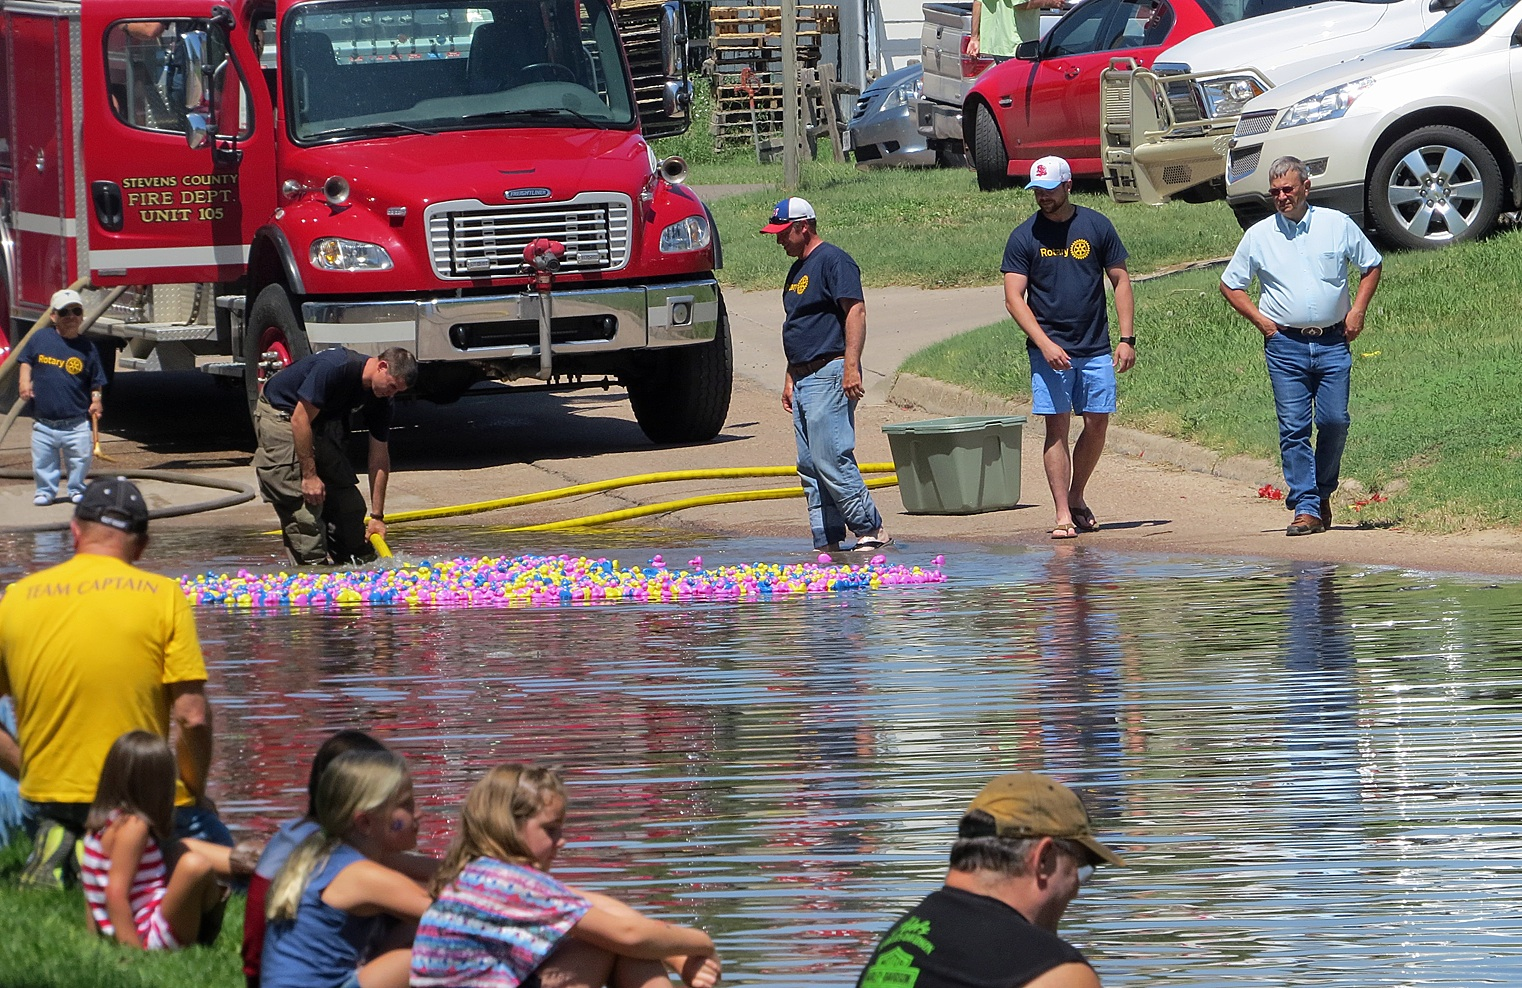 Townspeople line the 100 block of East Third Street while Hugoton Rotarians and Stevens County firefighters flood Canal Street for the Rotary's annual Duck Race. Ducks are sold for weeks before the event, and the highly anticipated race serves as a kind of finale for Hugoton's Park Day. Greg Soelter walked away the big winner, claiming the $1000 grand prize.